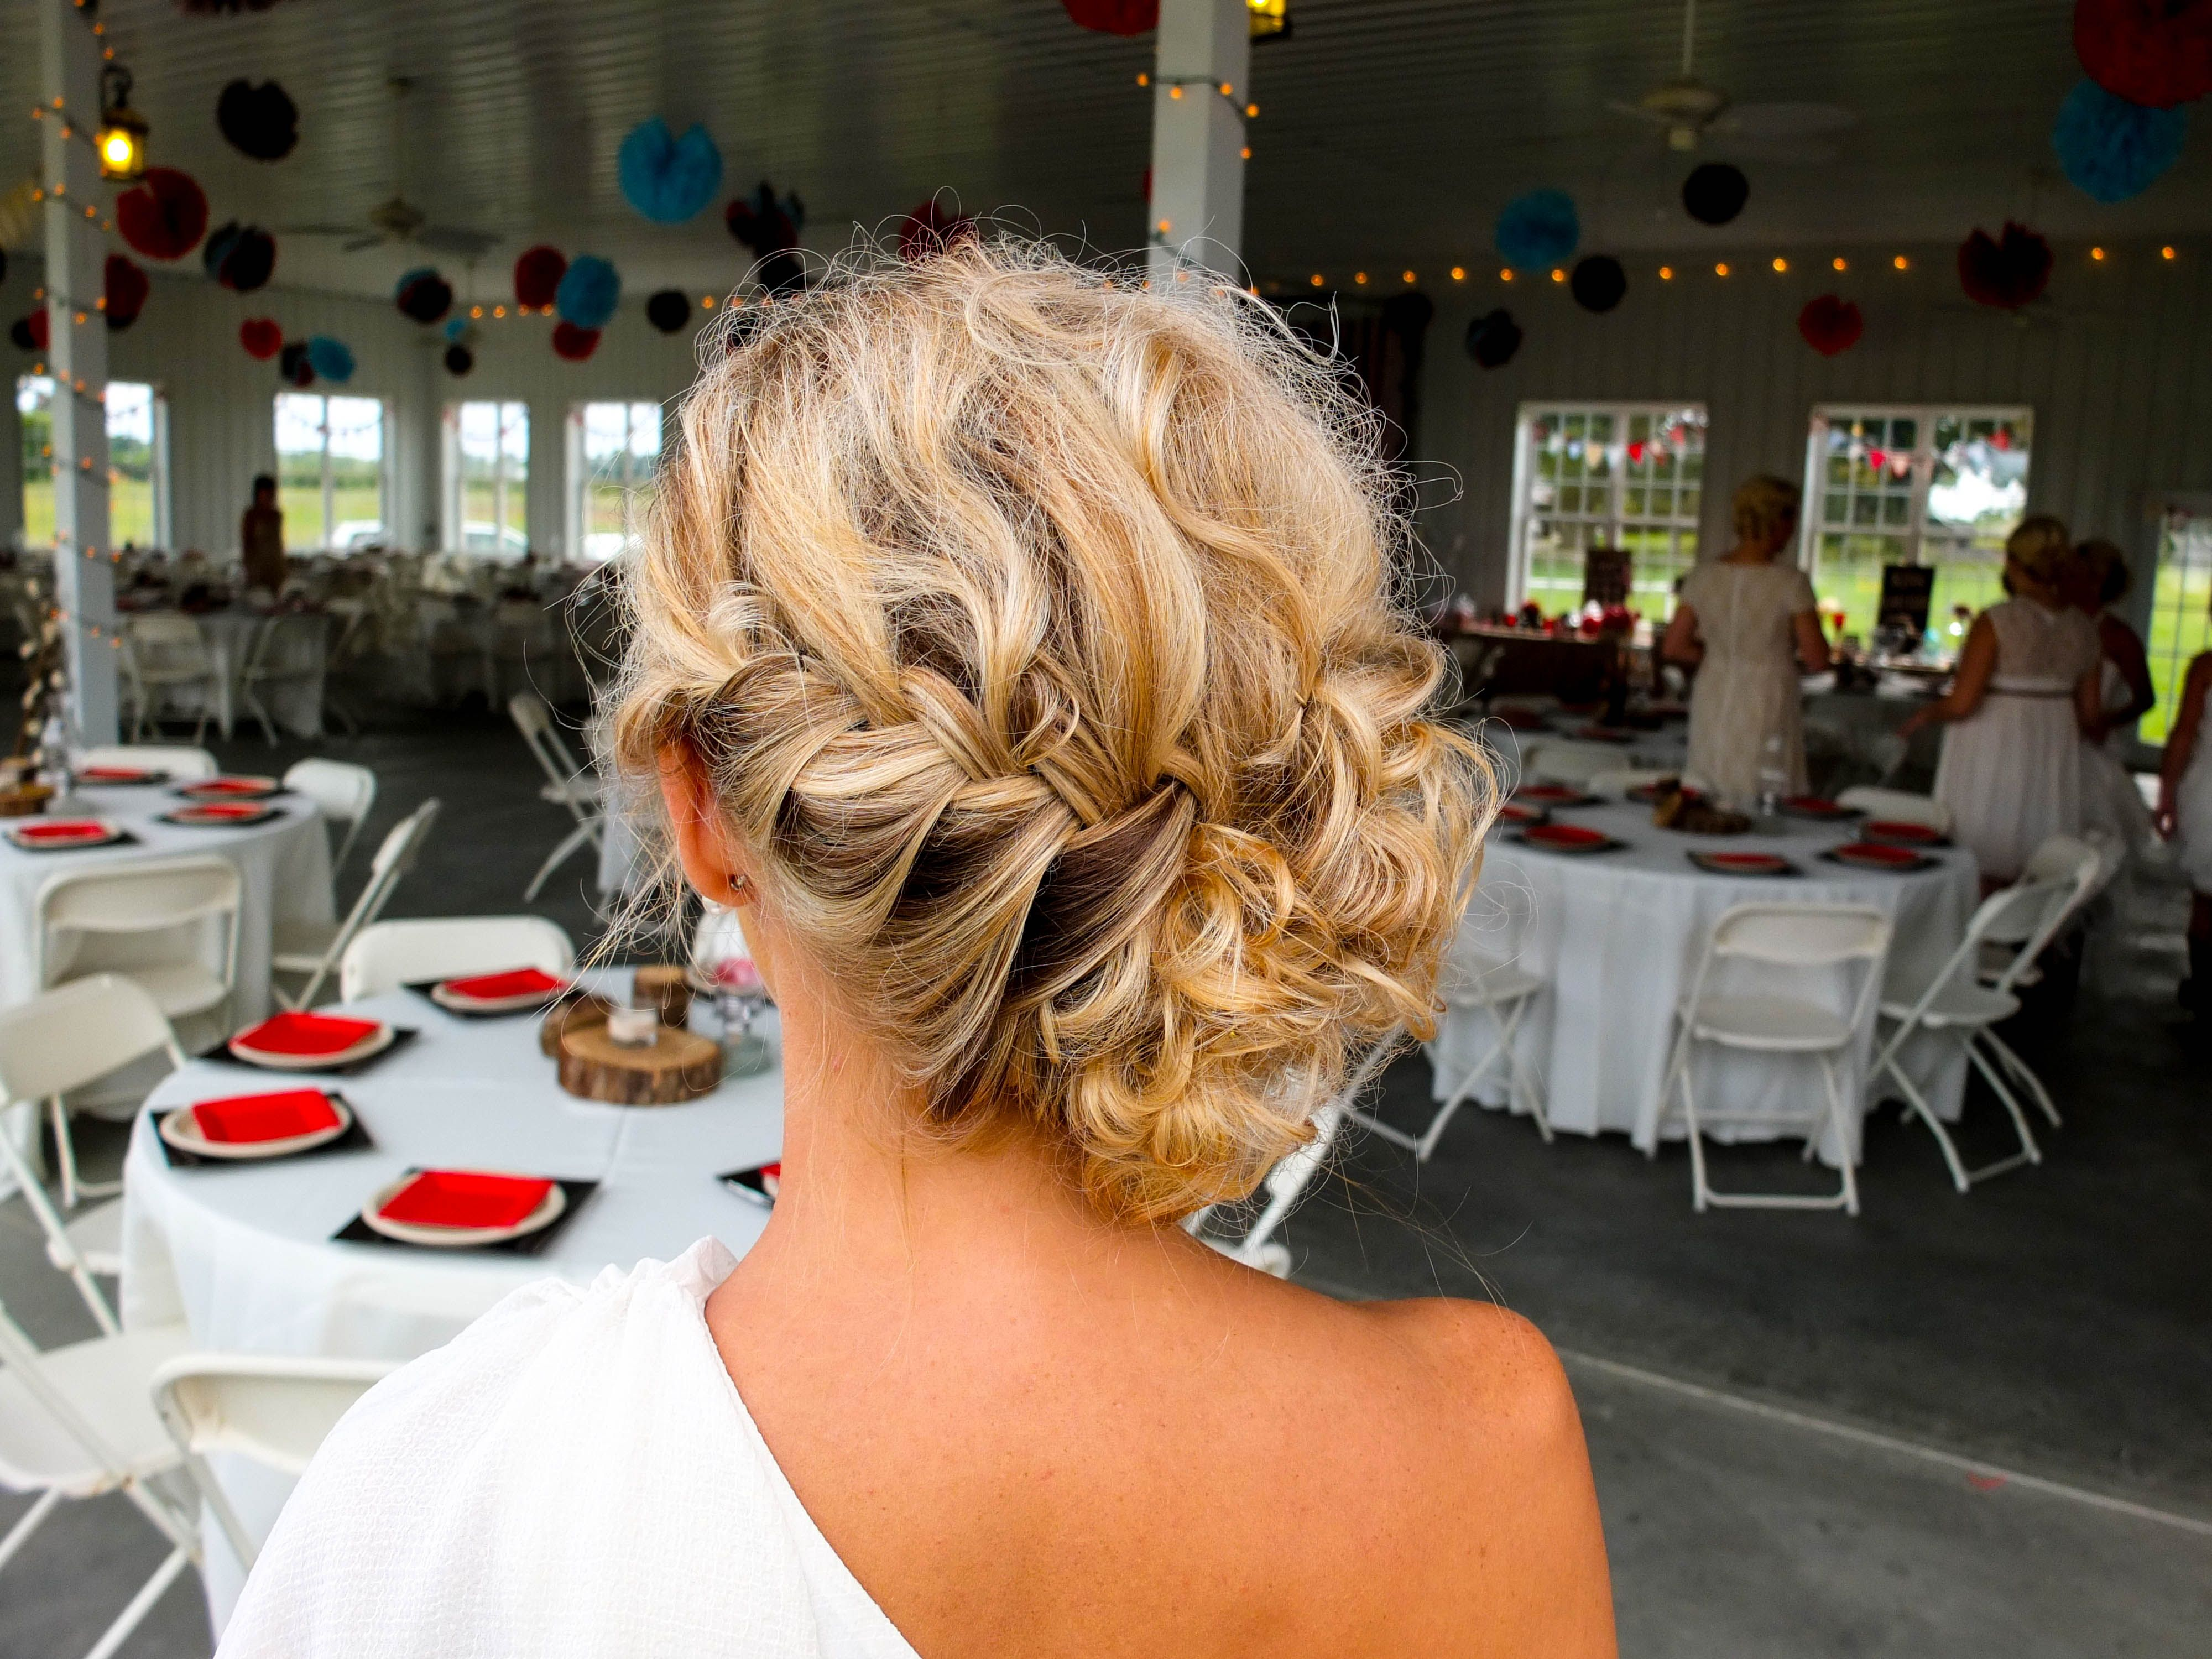 a bridesmaid hairstyle for an outdoor rustic wedding. | hair